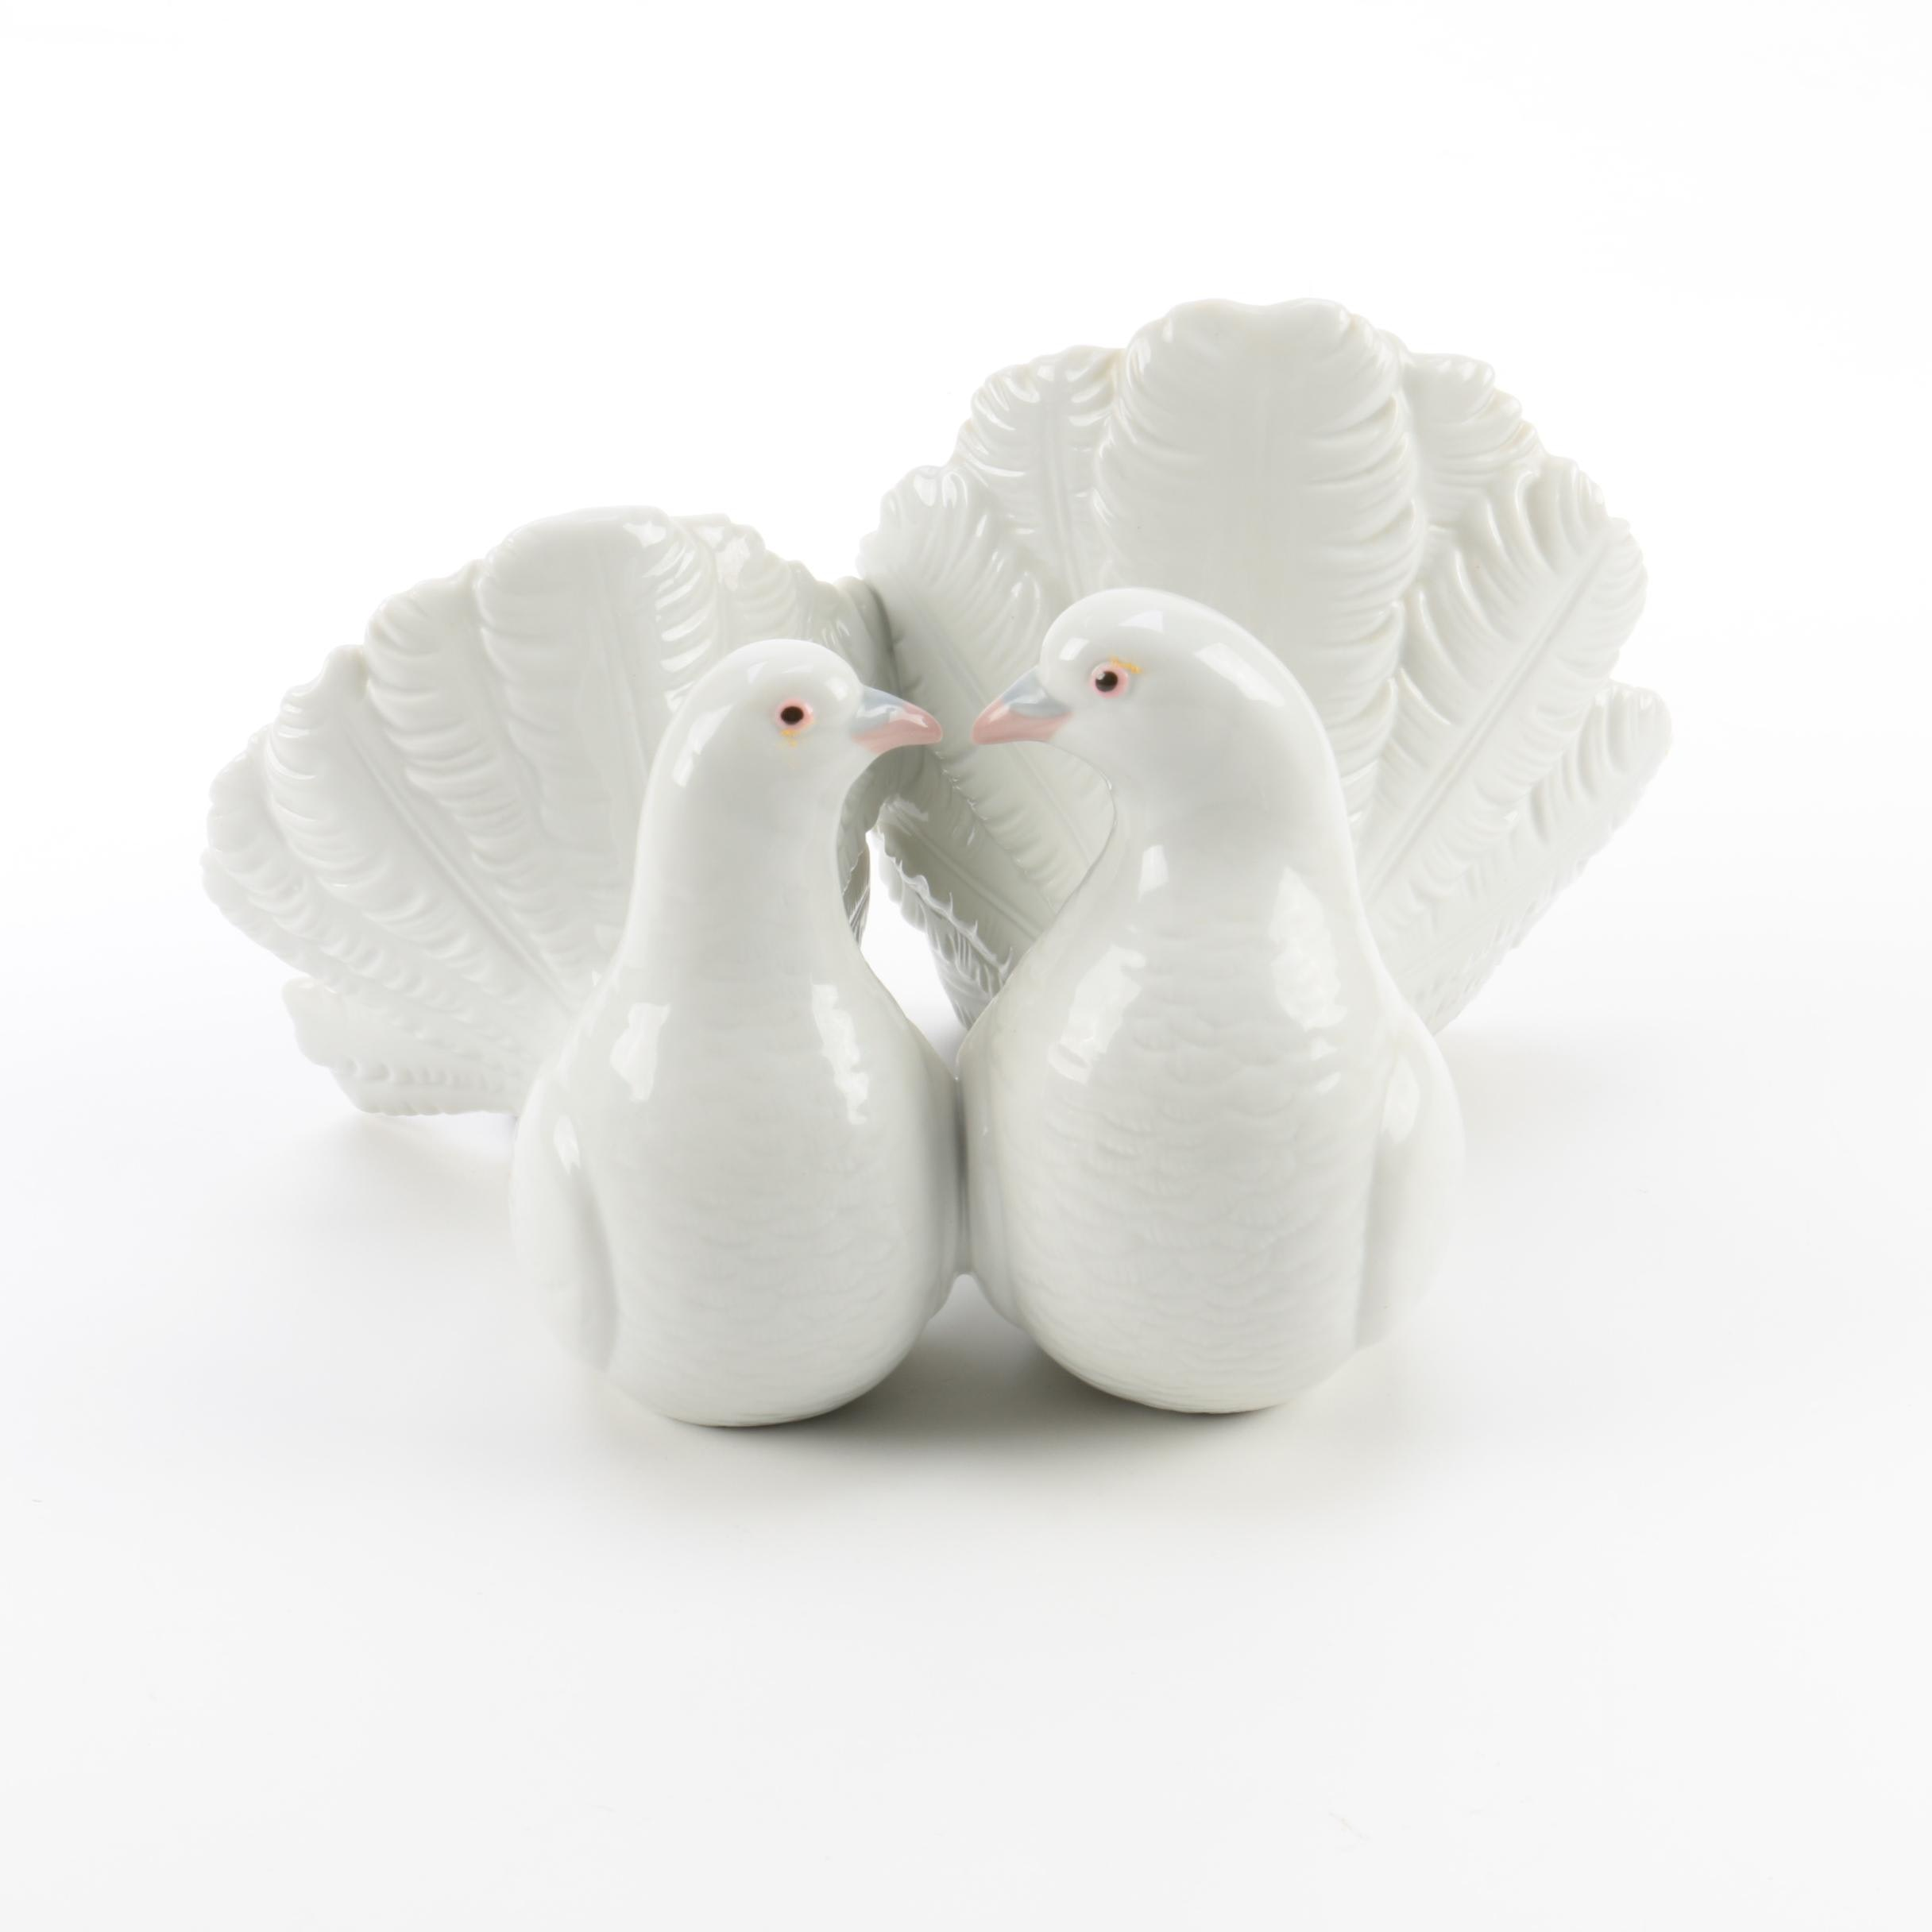 "Lladró Porcelain ""Couple of Kissing Doves"" Figurine"